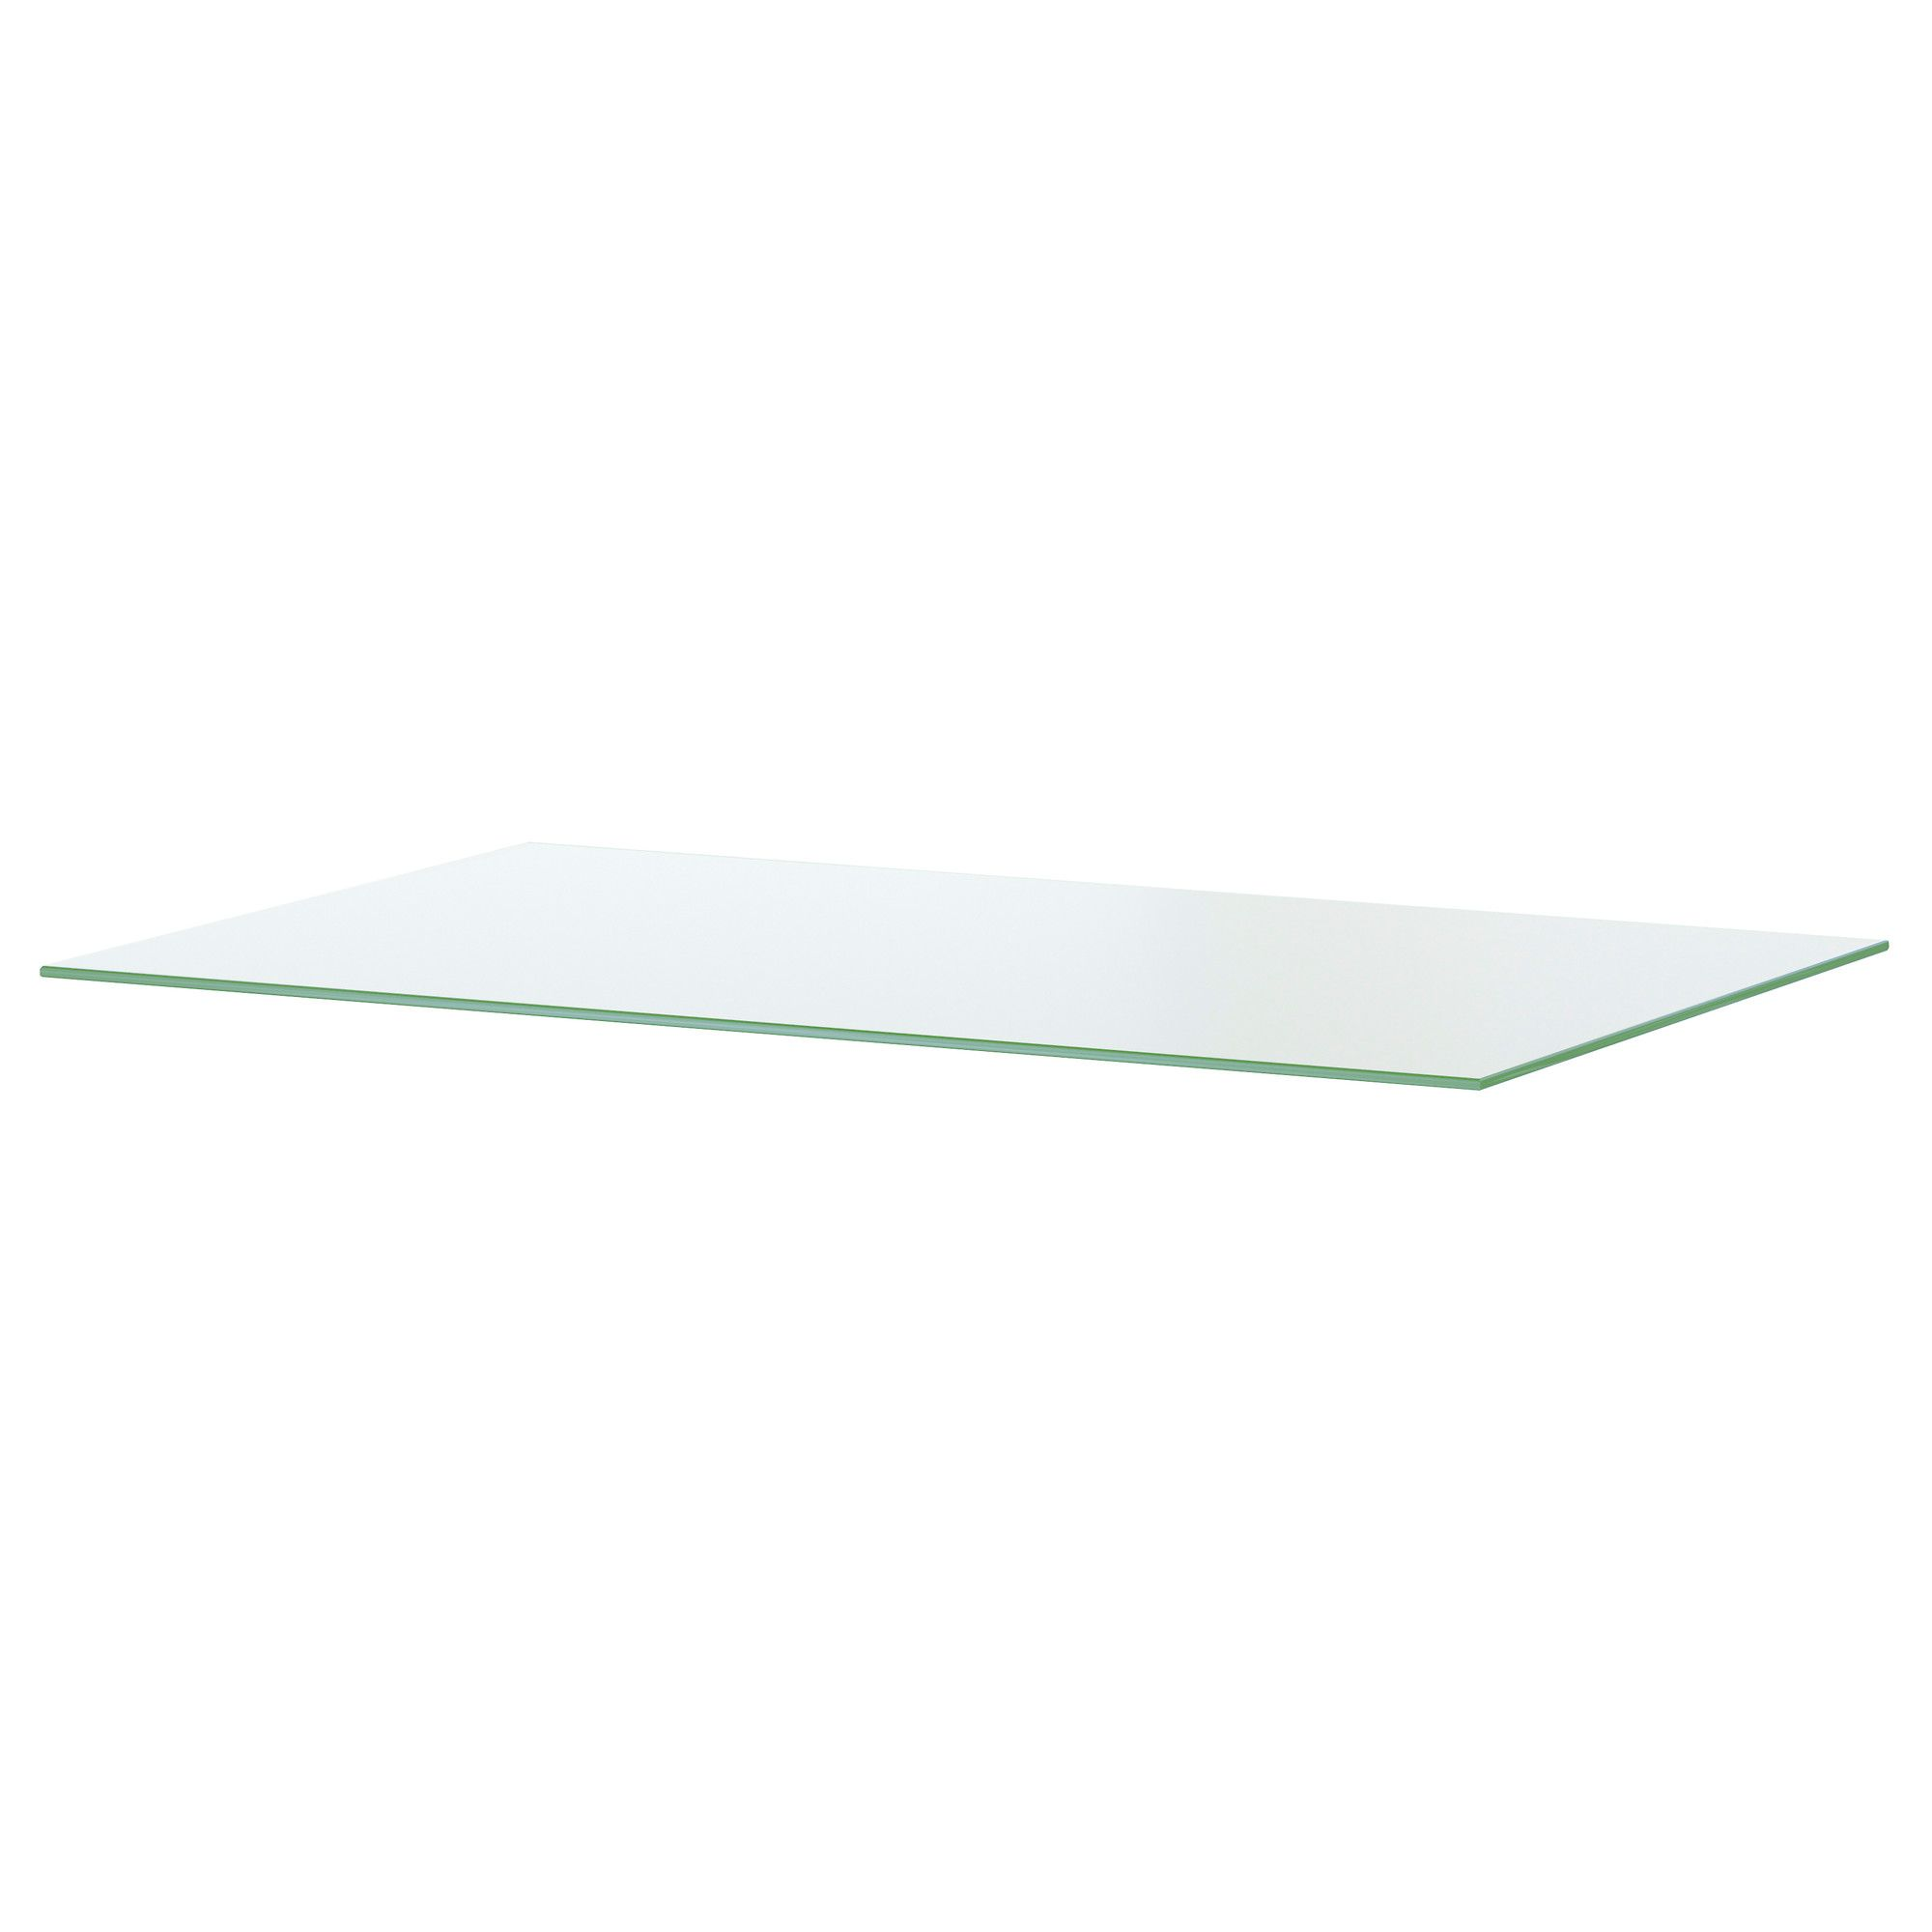 Enchanting Glass Table Cover Ikea Good Glass Table Cover Ikea 28 On Inpirational Kitchen Ideas With Glass Table Cover Ike Glass Top Ikea Glass Table Top Ikea